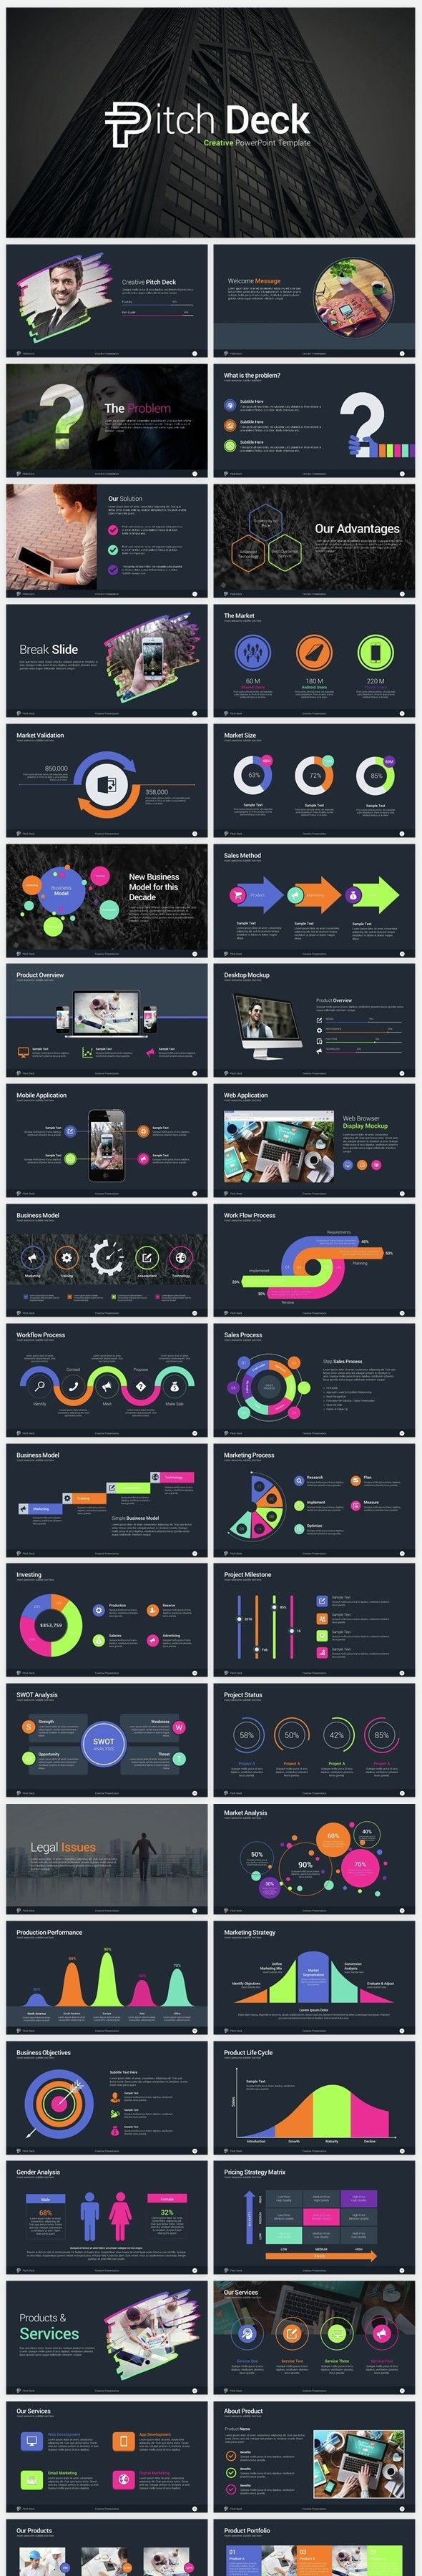 Creative Pitch Deck PowerPoint Template | Pitch, Business planning ...